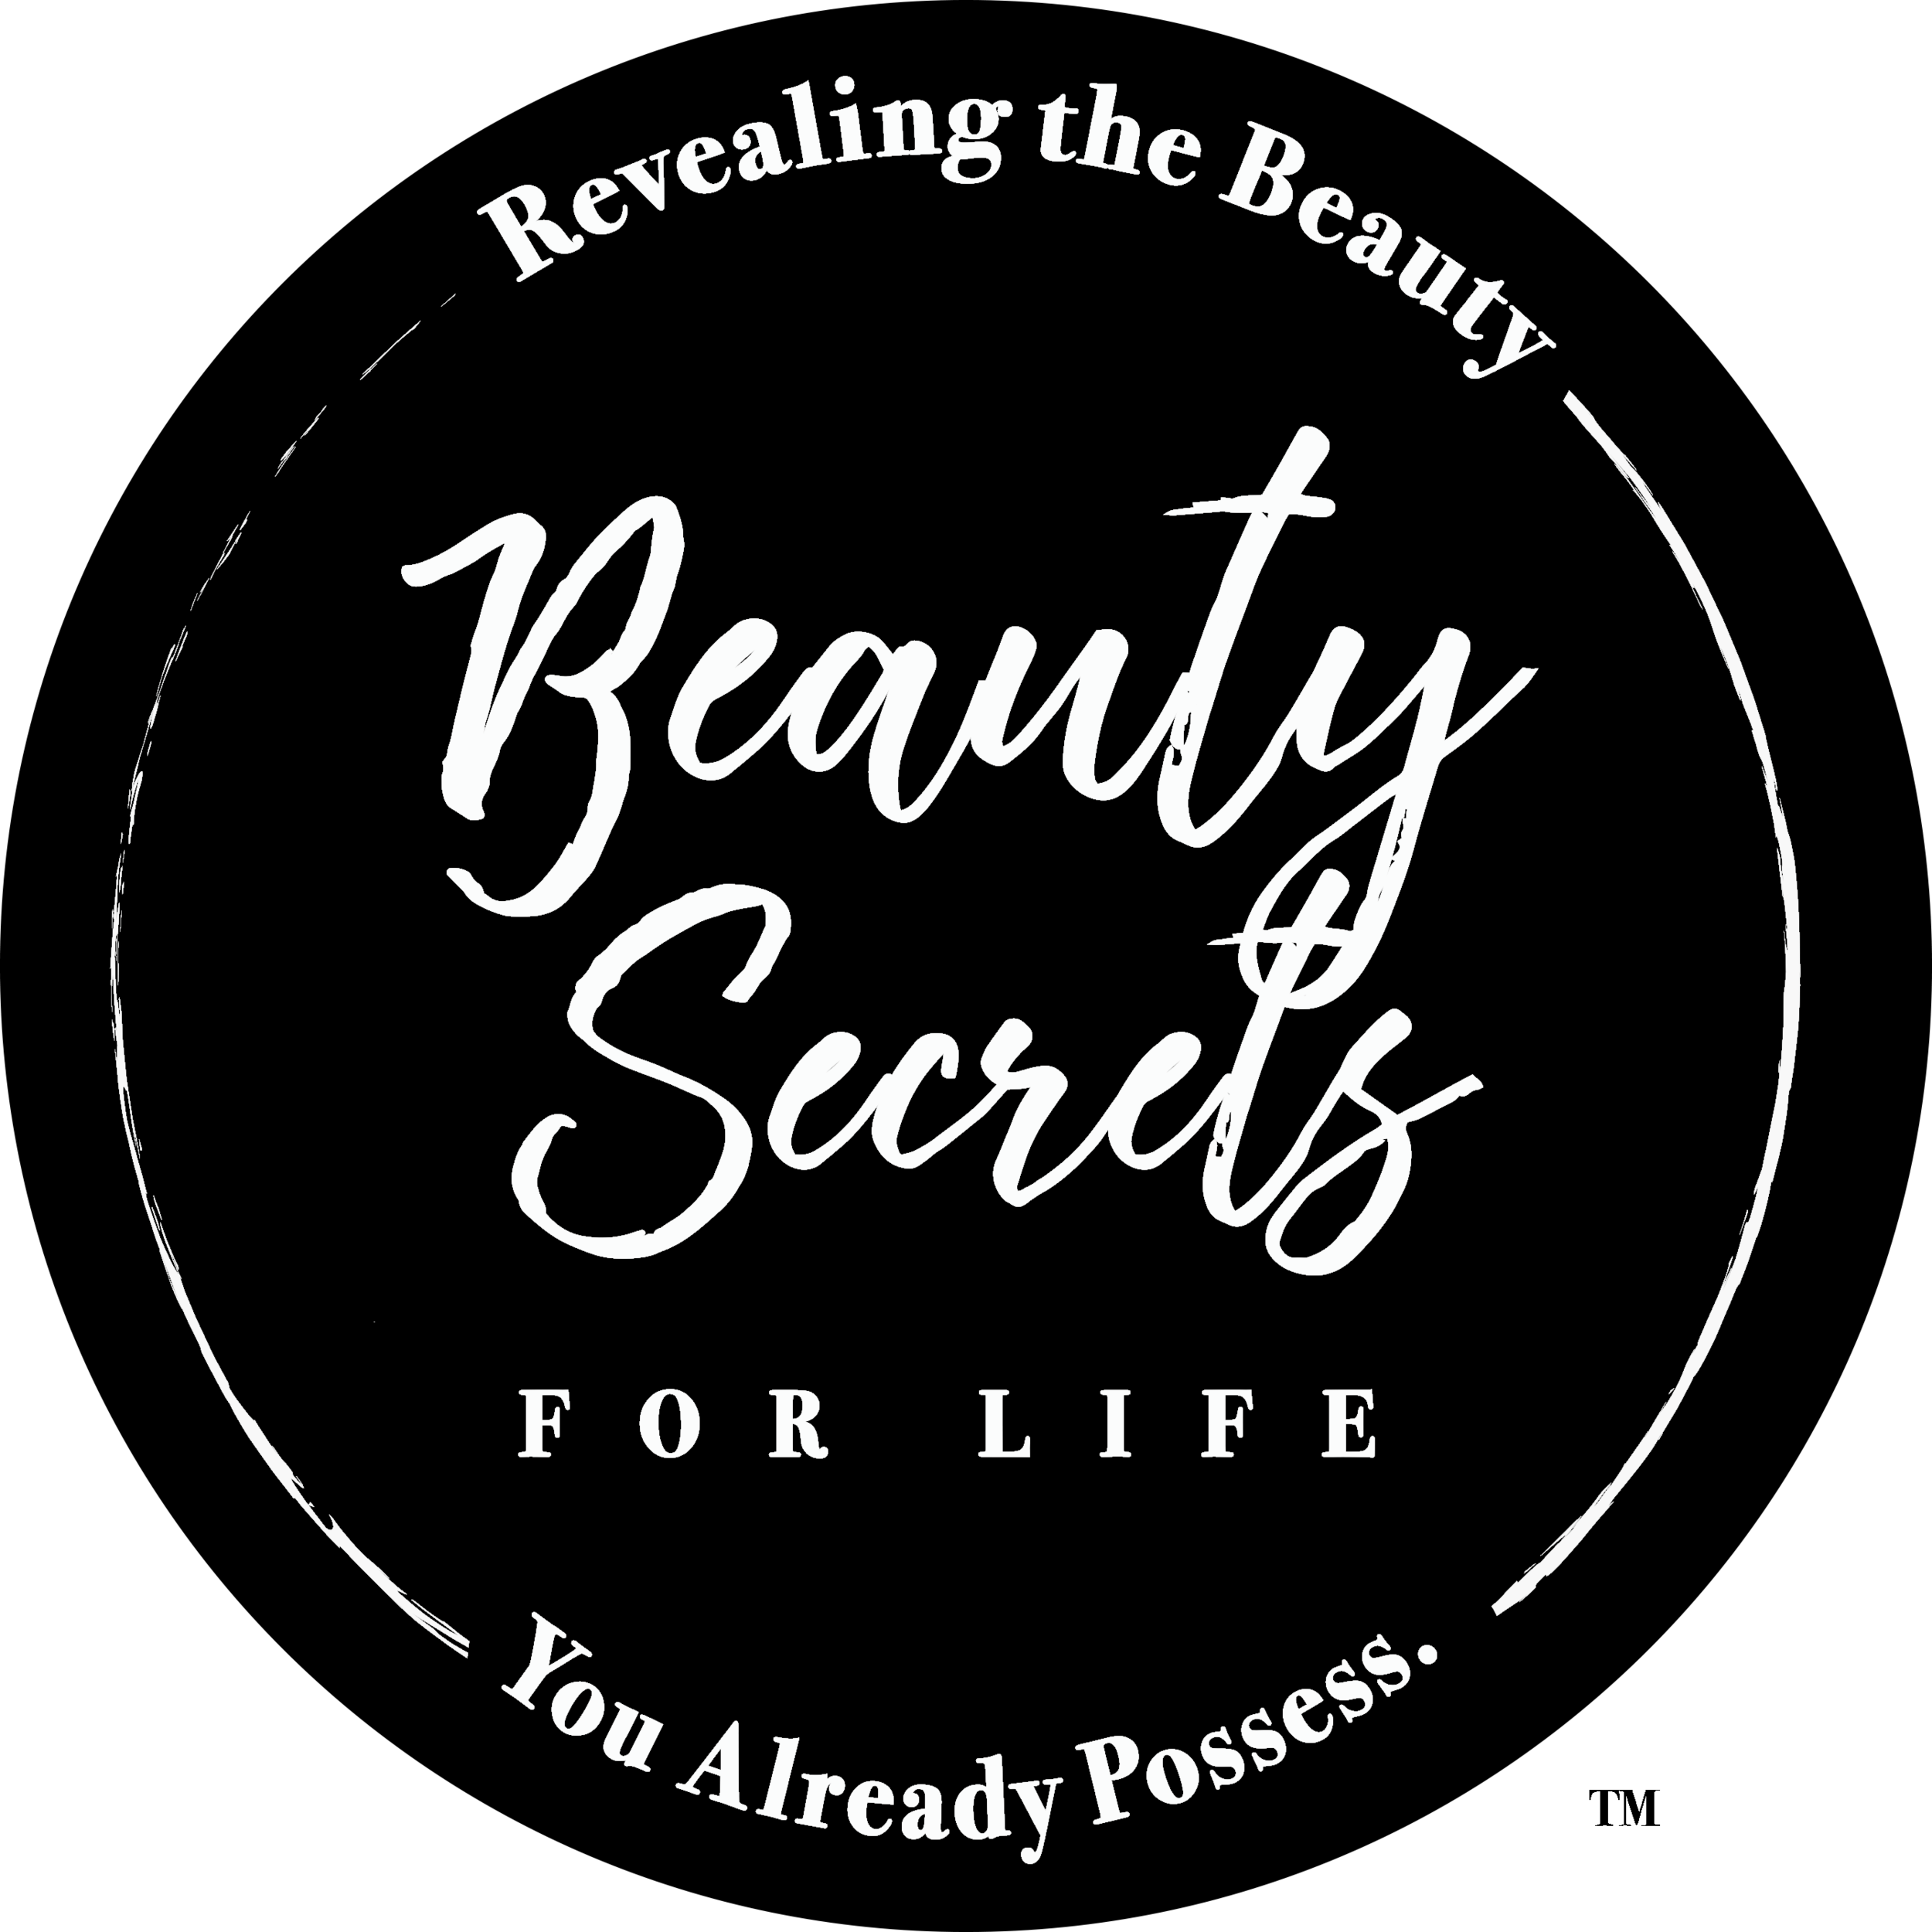 What are Beauty Secrets for Life? - Beauty Secrets for Life™ are nuggets of truth that cleanse, tone, and moisturize our souls from the grind of daily life. They encourage our hope and refresh our souls.